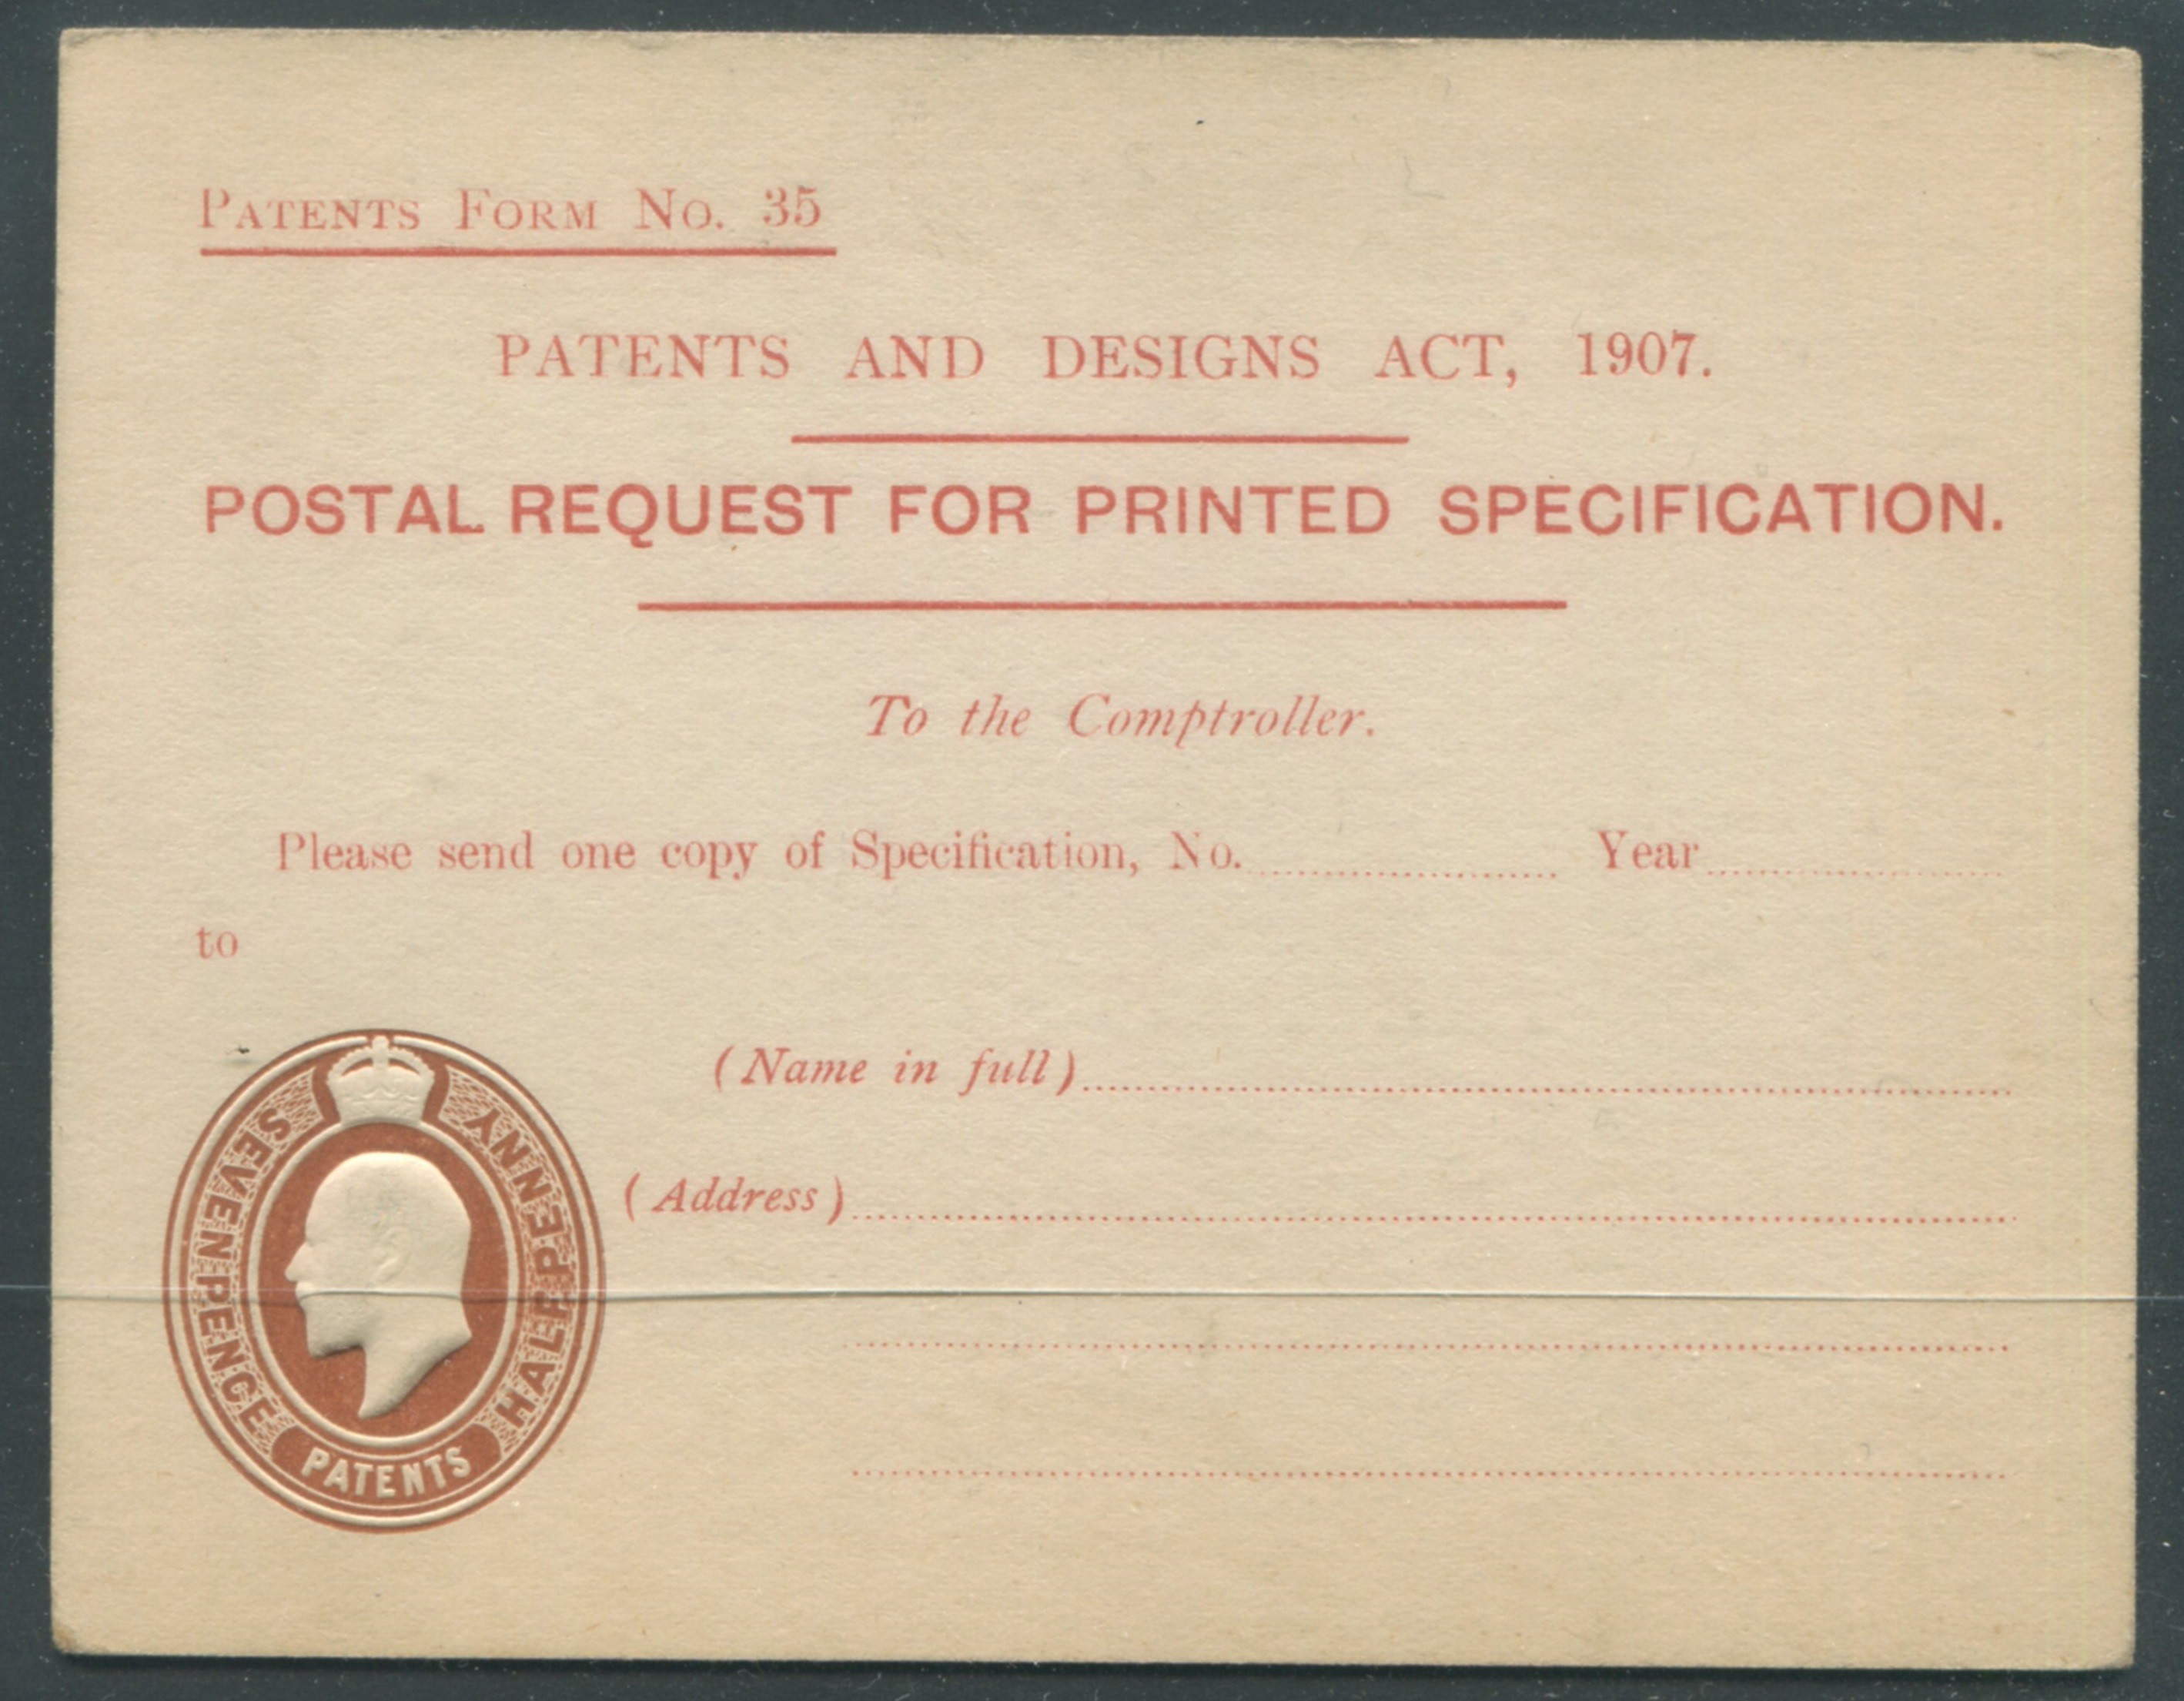 POSTAL STATIONERY POST CARD PATENT FORM KGV - IMPRINTED & EMBOSSED REVENUE STAMP